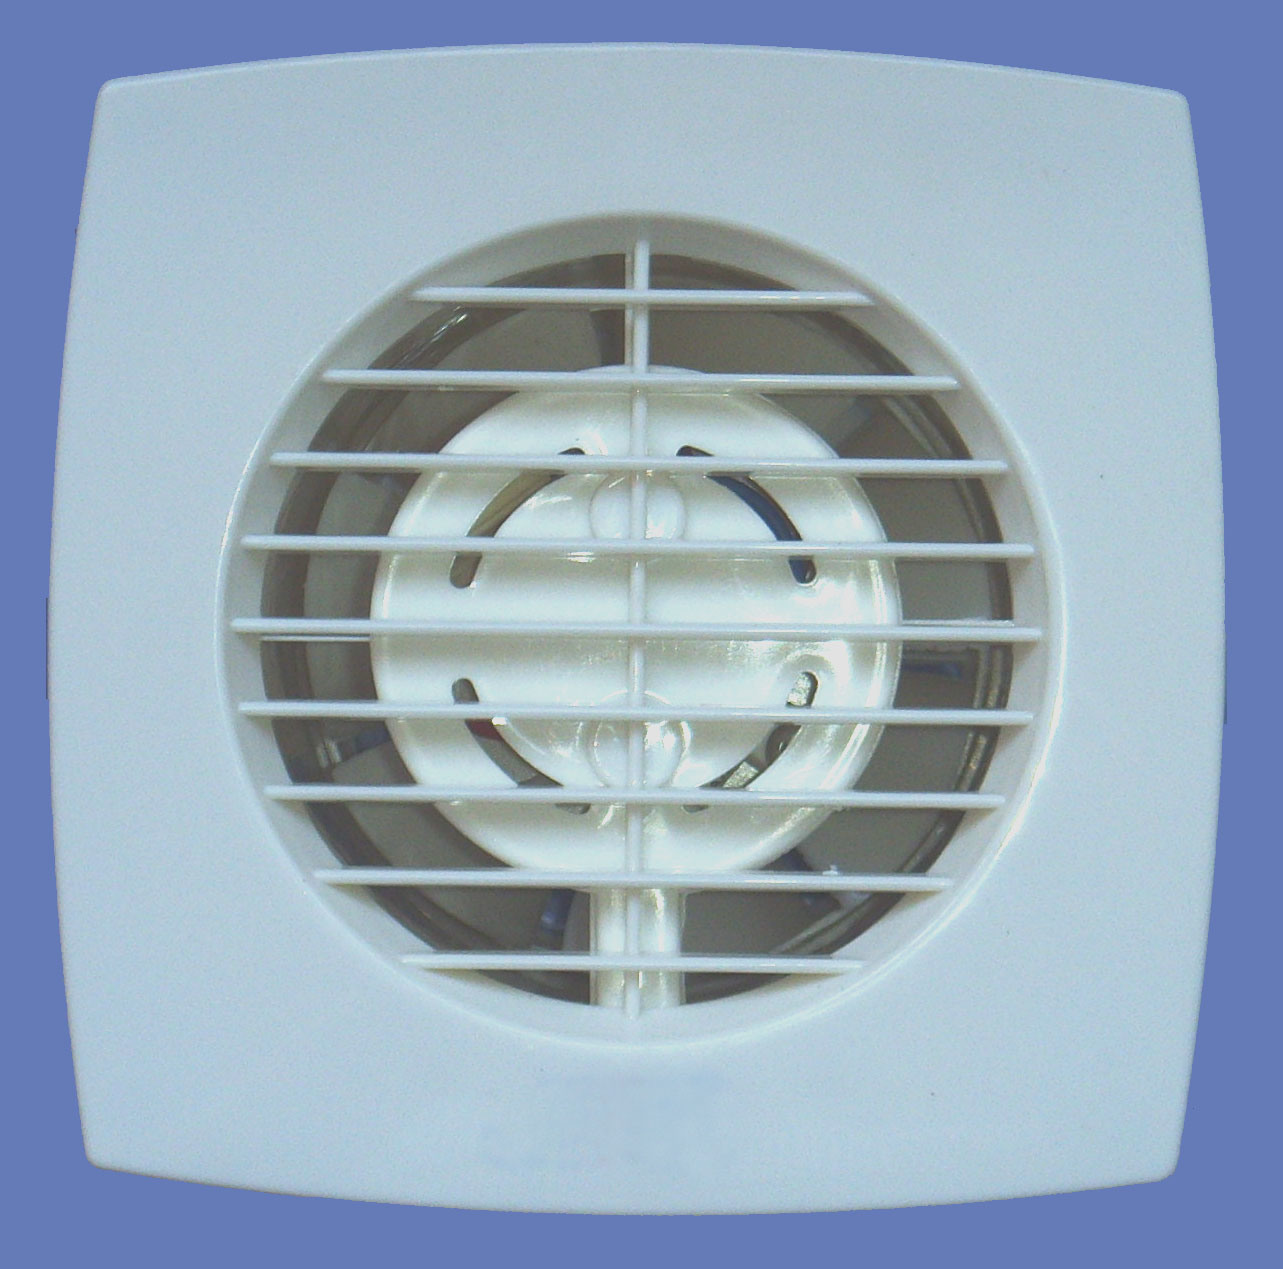 For a bathroom exhaust fan bath fans for Bathroom ceiling fans